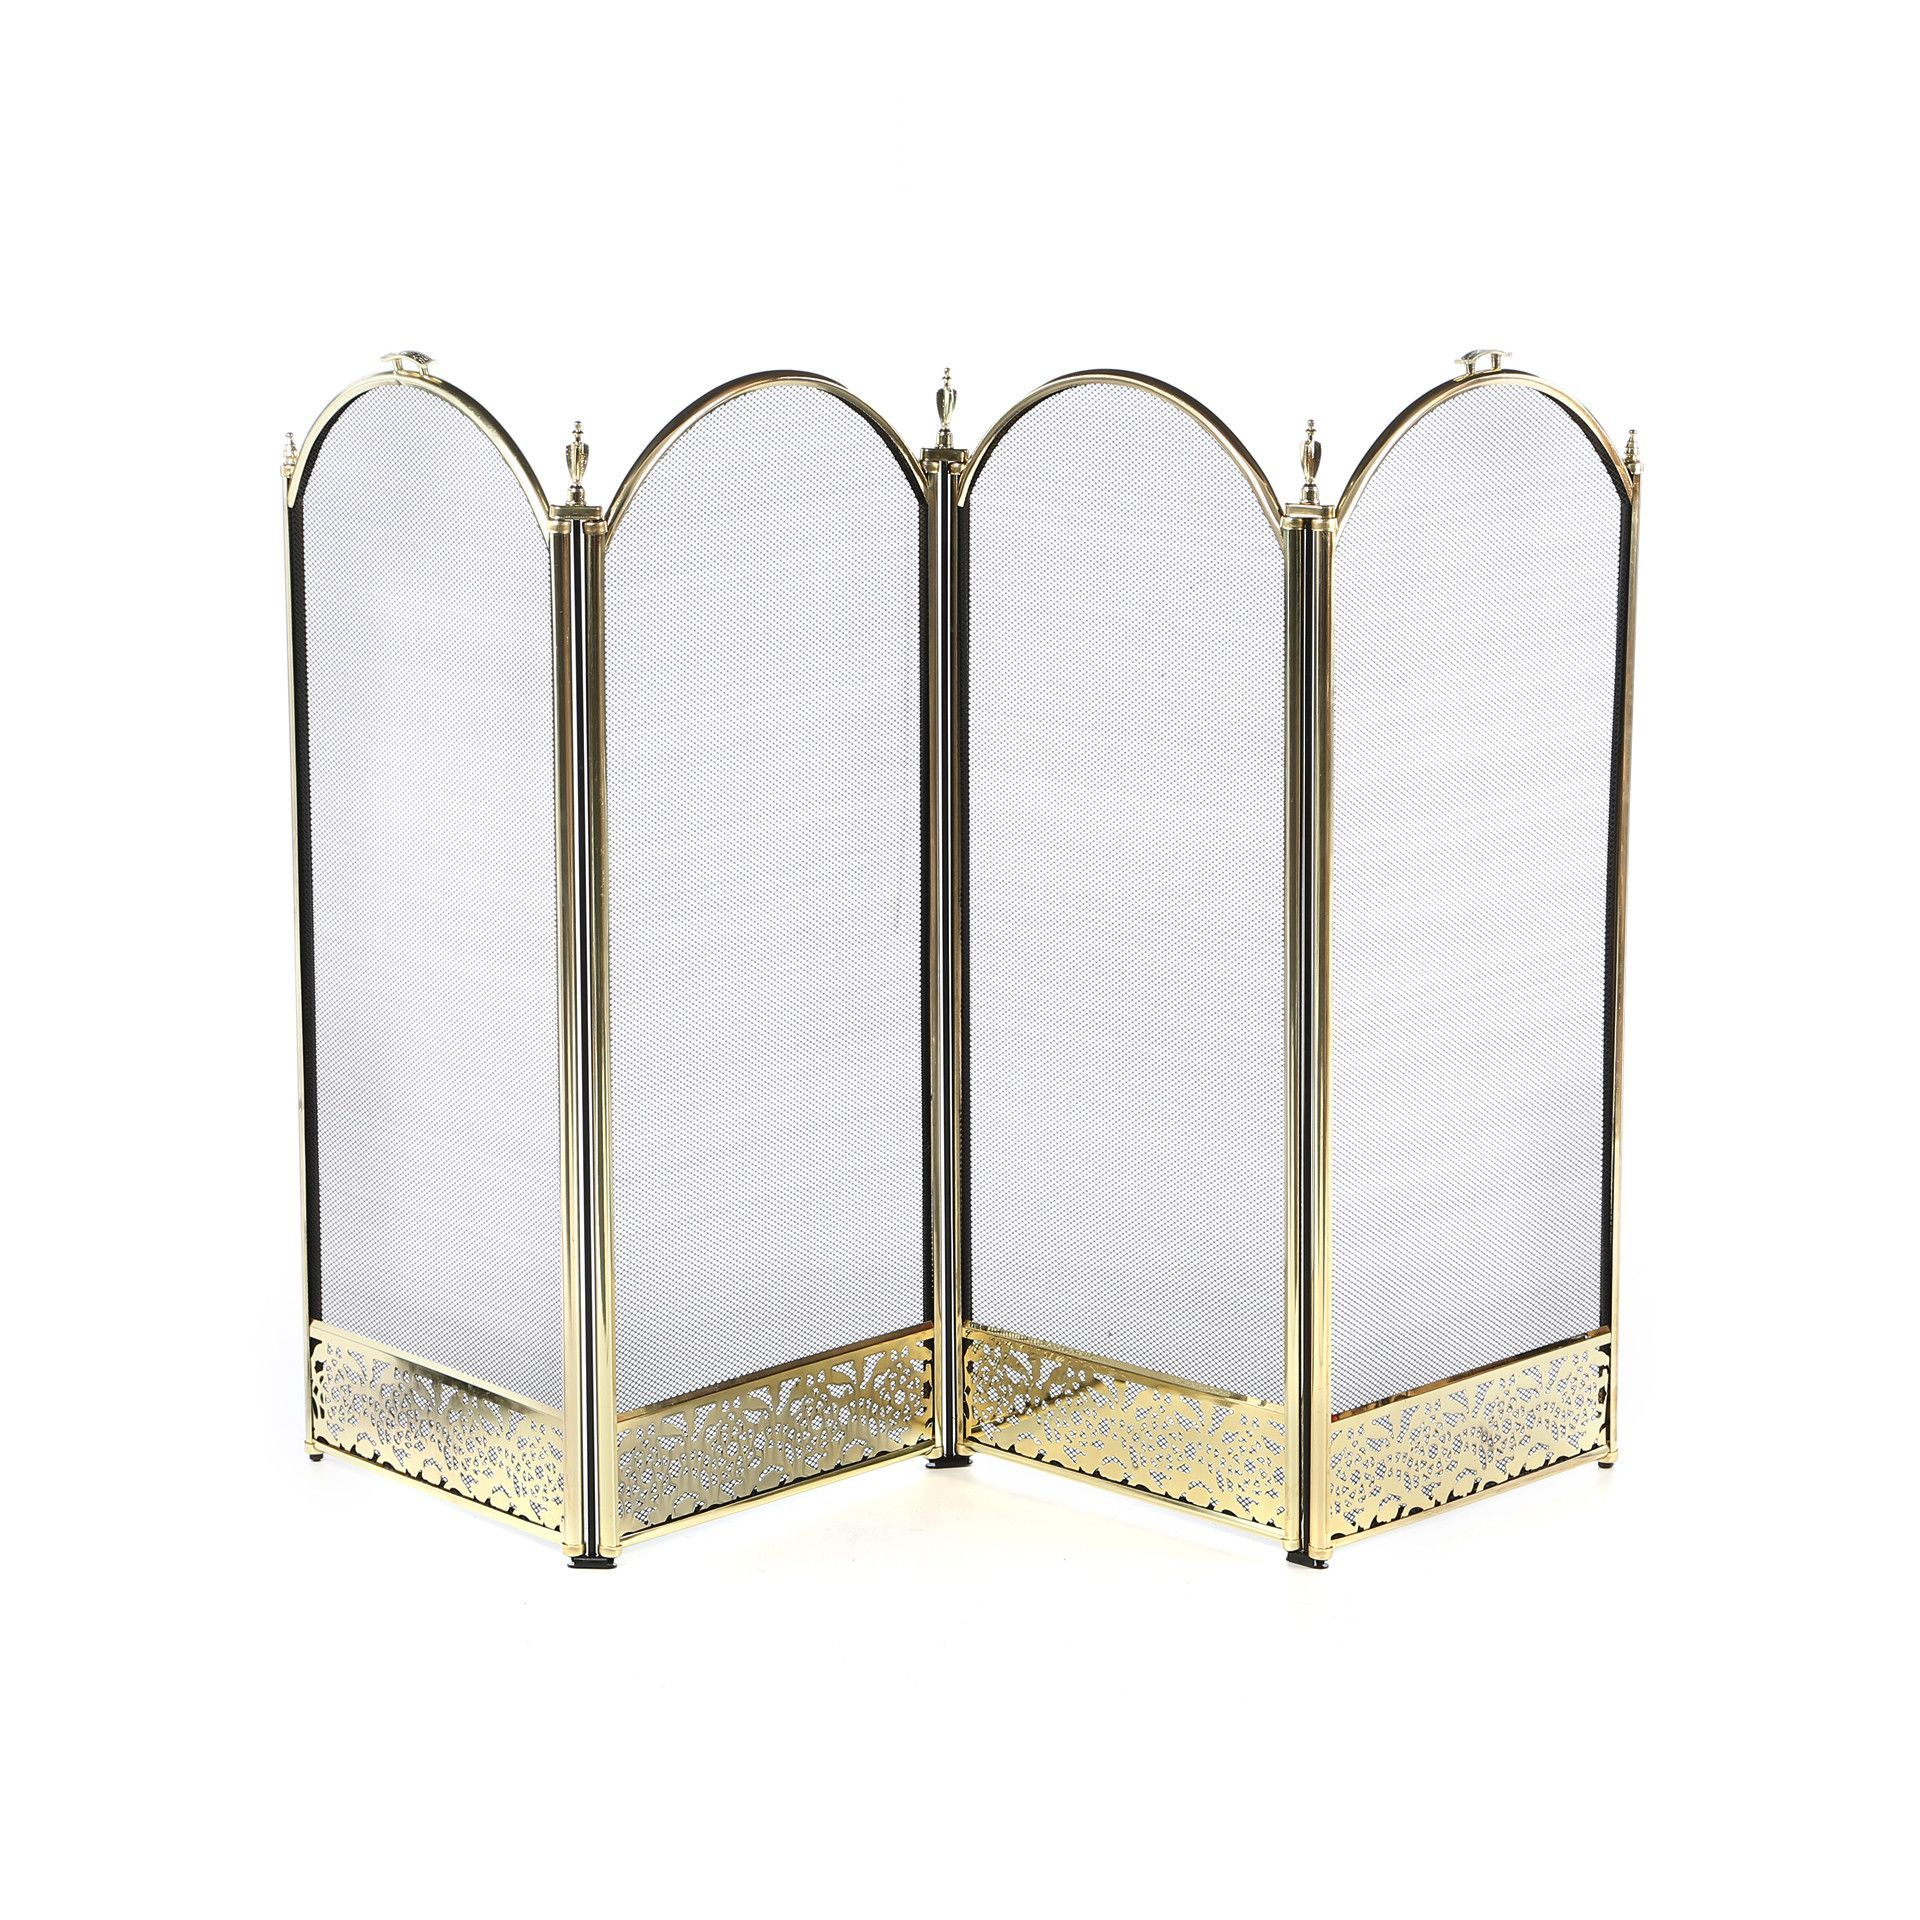 4 panel brass fireplace screen with decorative filigree products